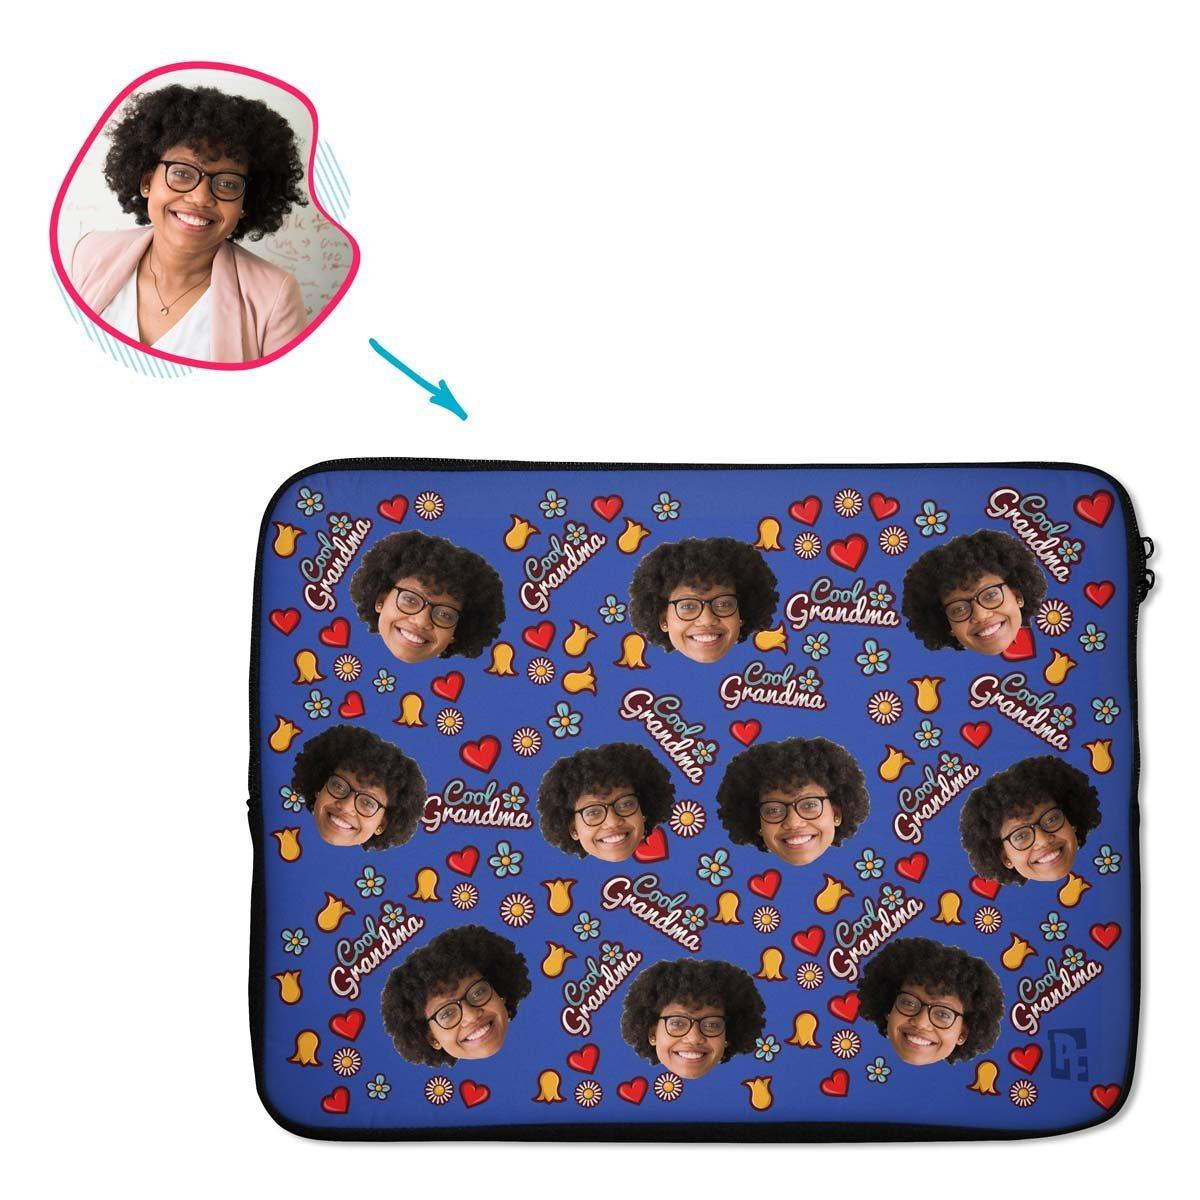 darkblue Cool Grandmother laptop sleeve personalized with photo of face printed on them